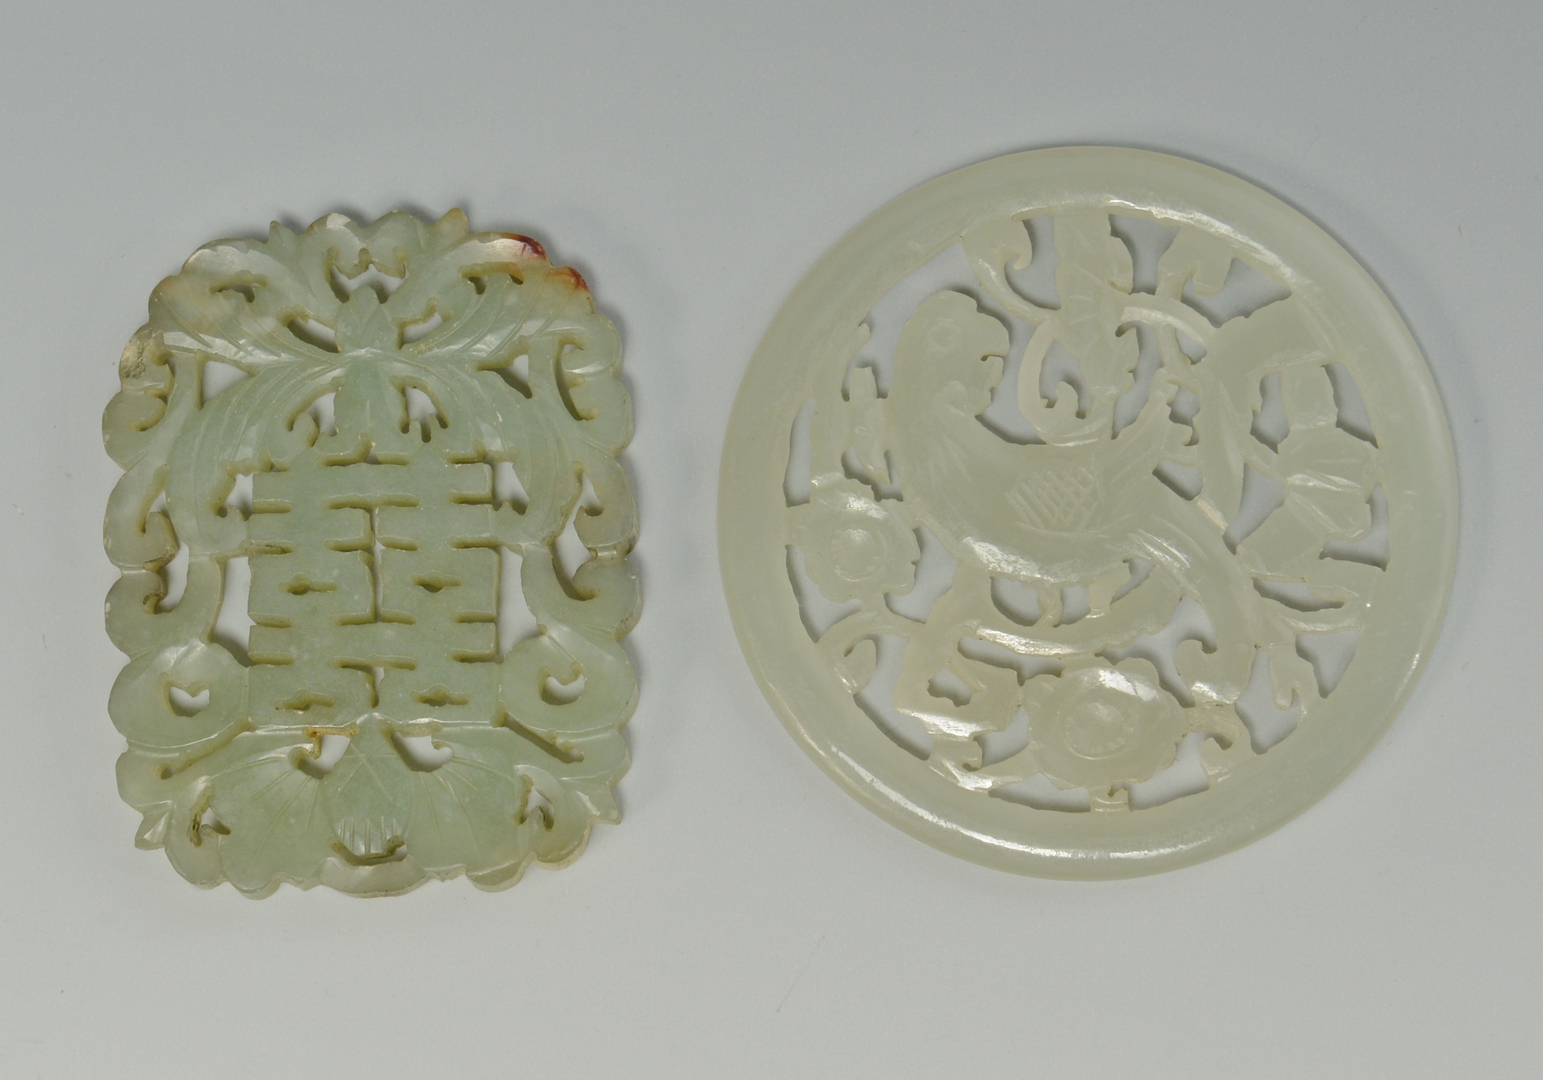 Lot 3088145: 2 Carved Chinese Jade Plaques